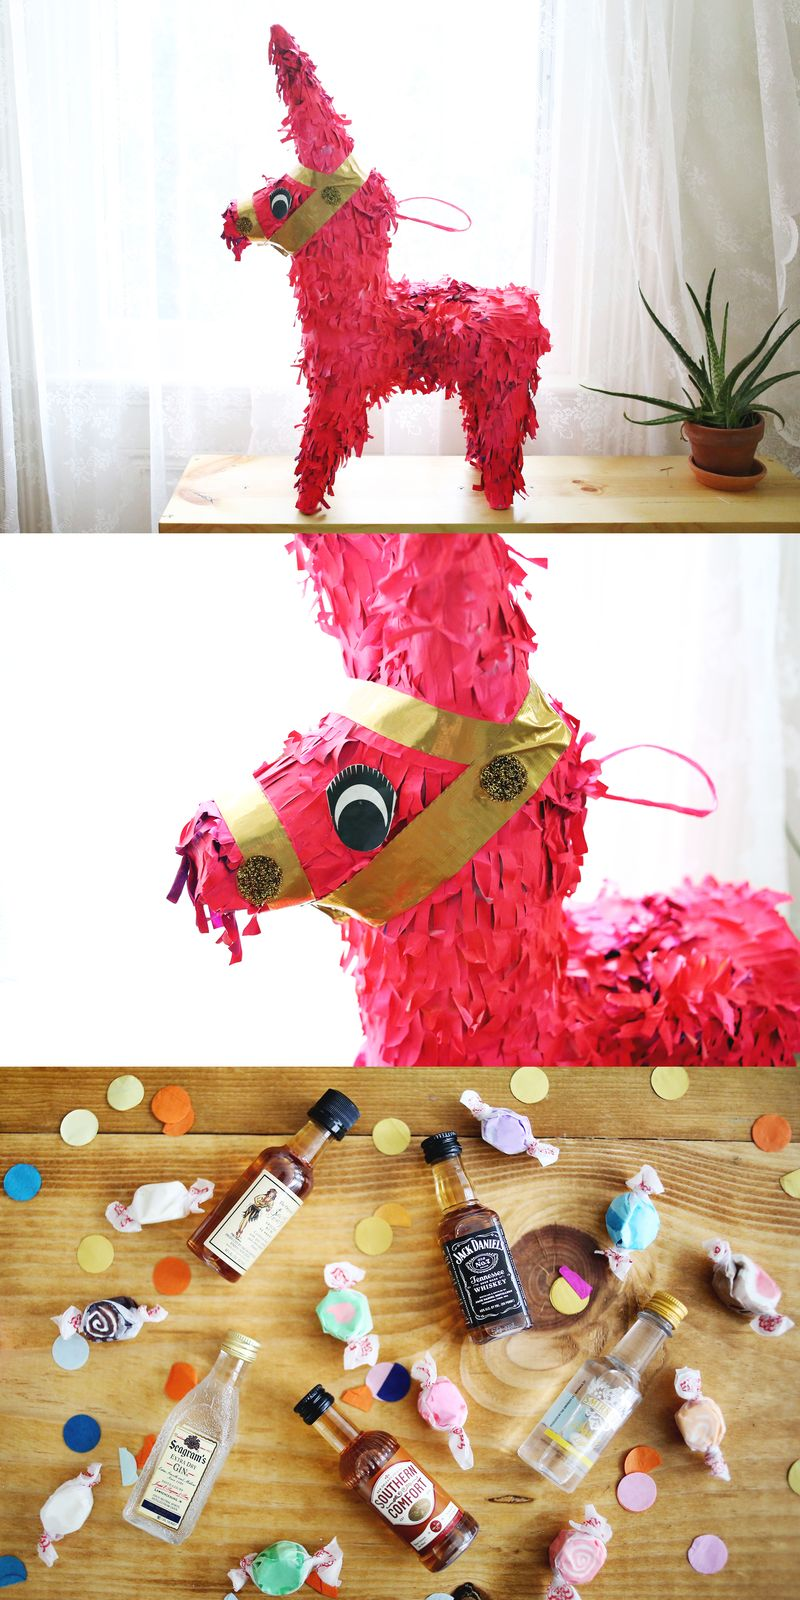 Funny Things To Put In A Pinata : funny, things, pinata, Bachelorette, Party, Piñata!, Beautiful